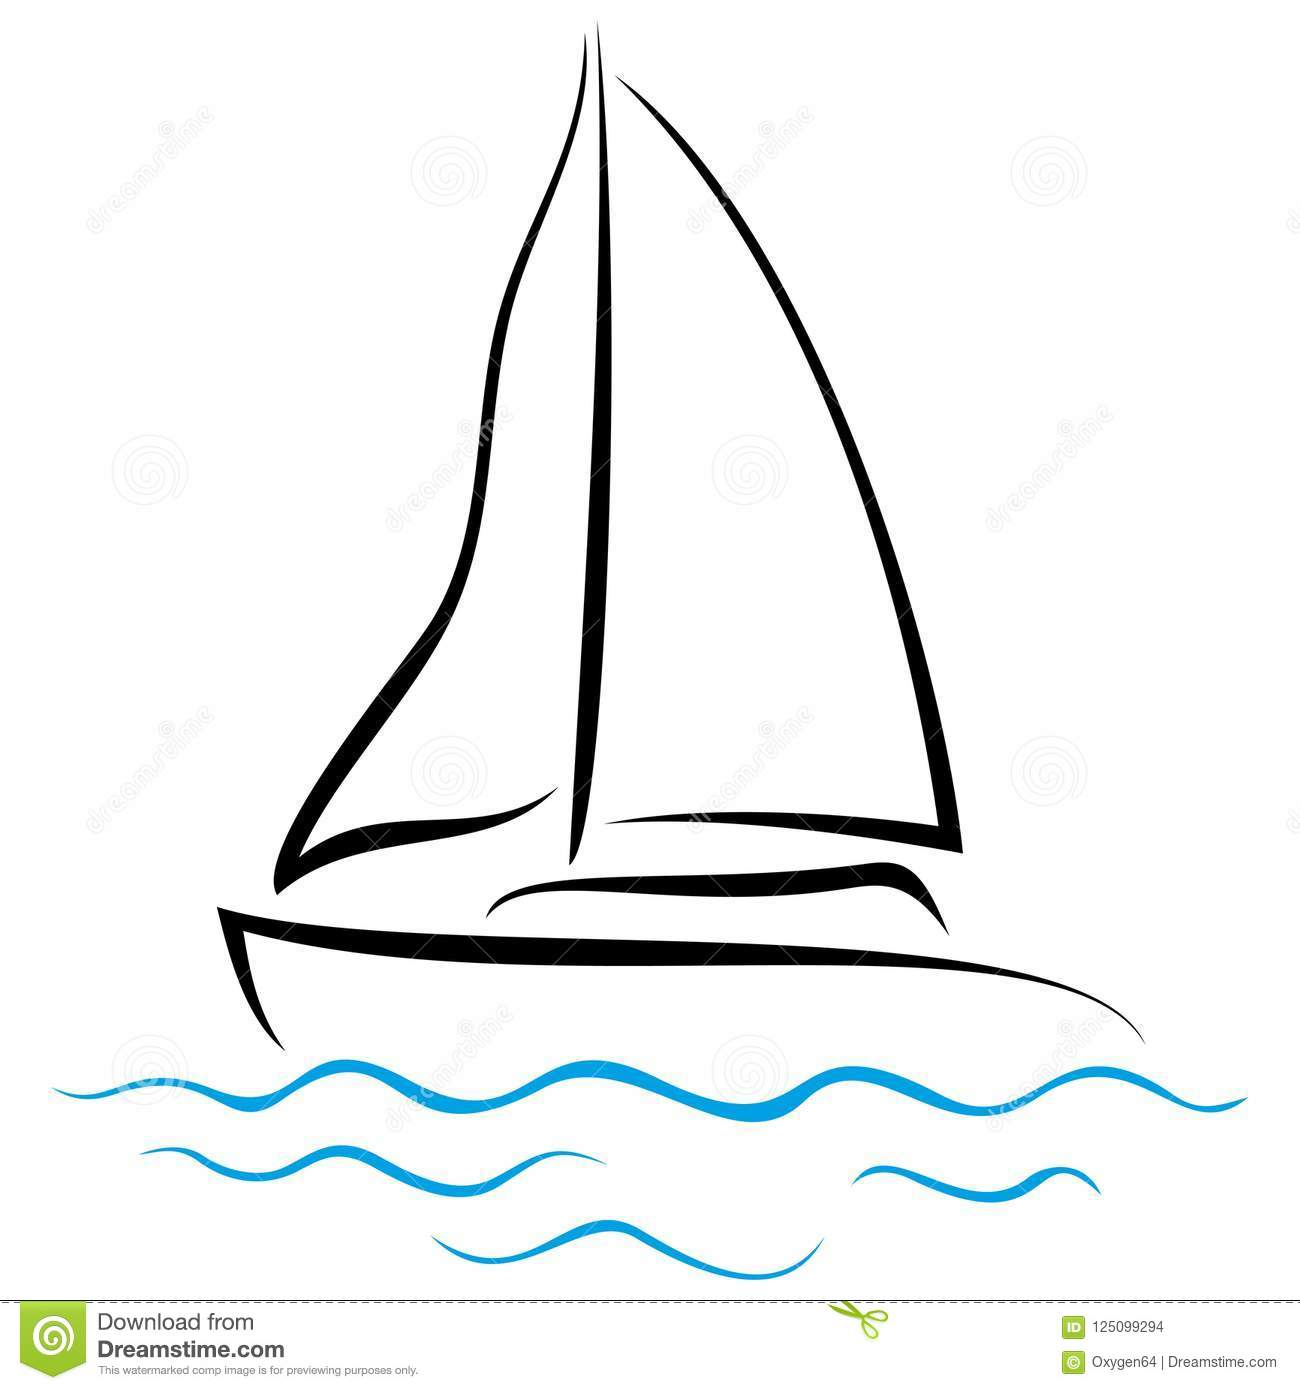 Emblem Of Yacht On Drawing Stock Vector Illustration Of